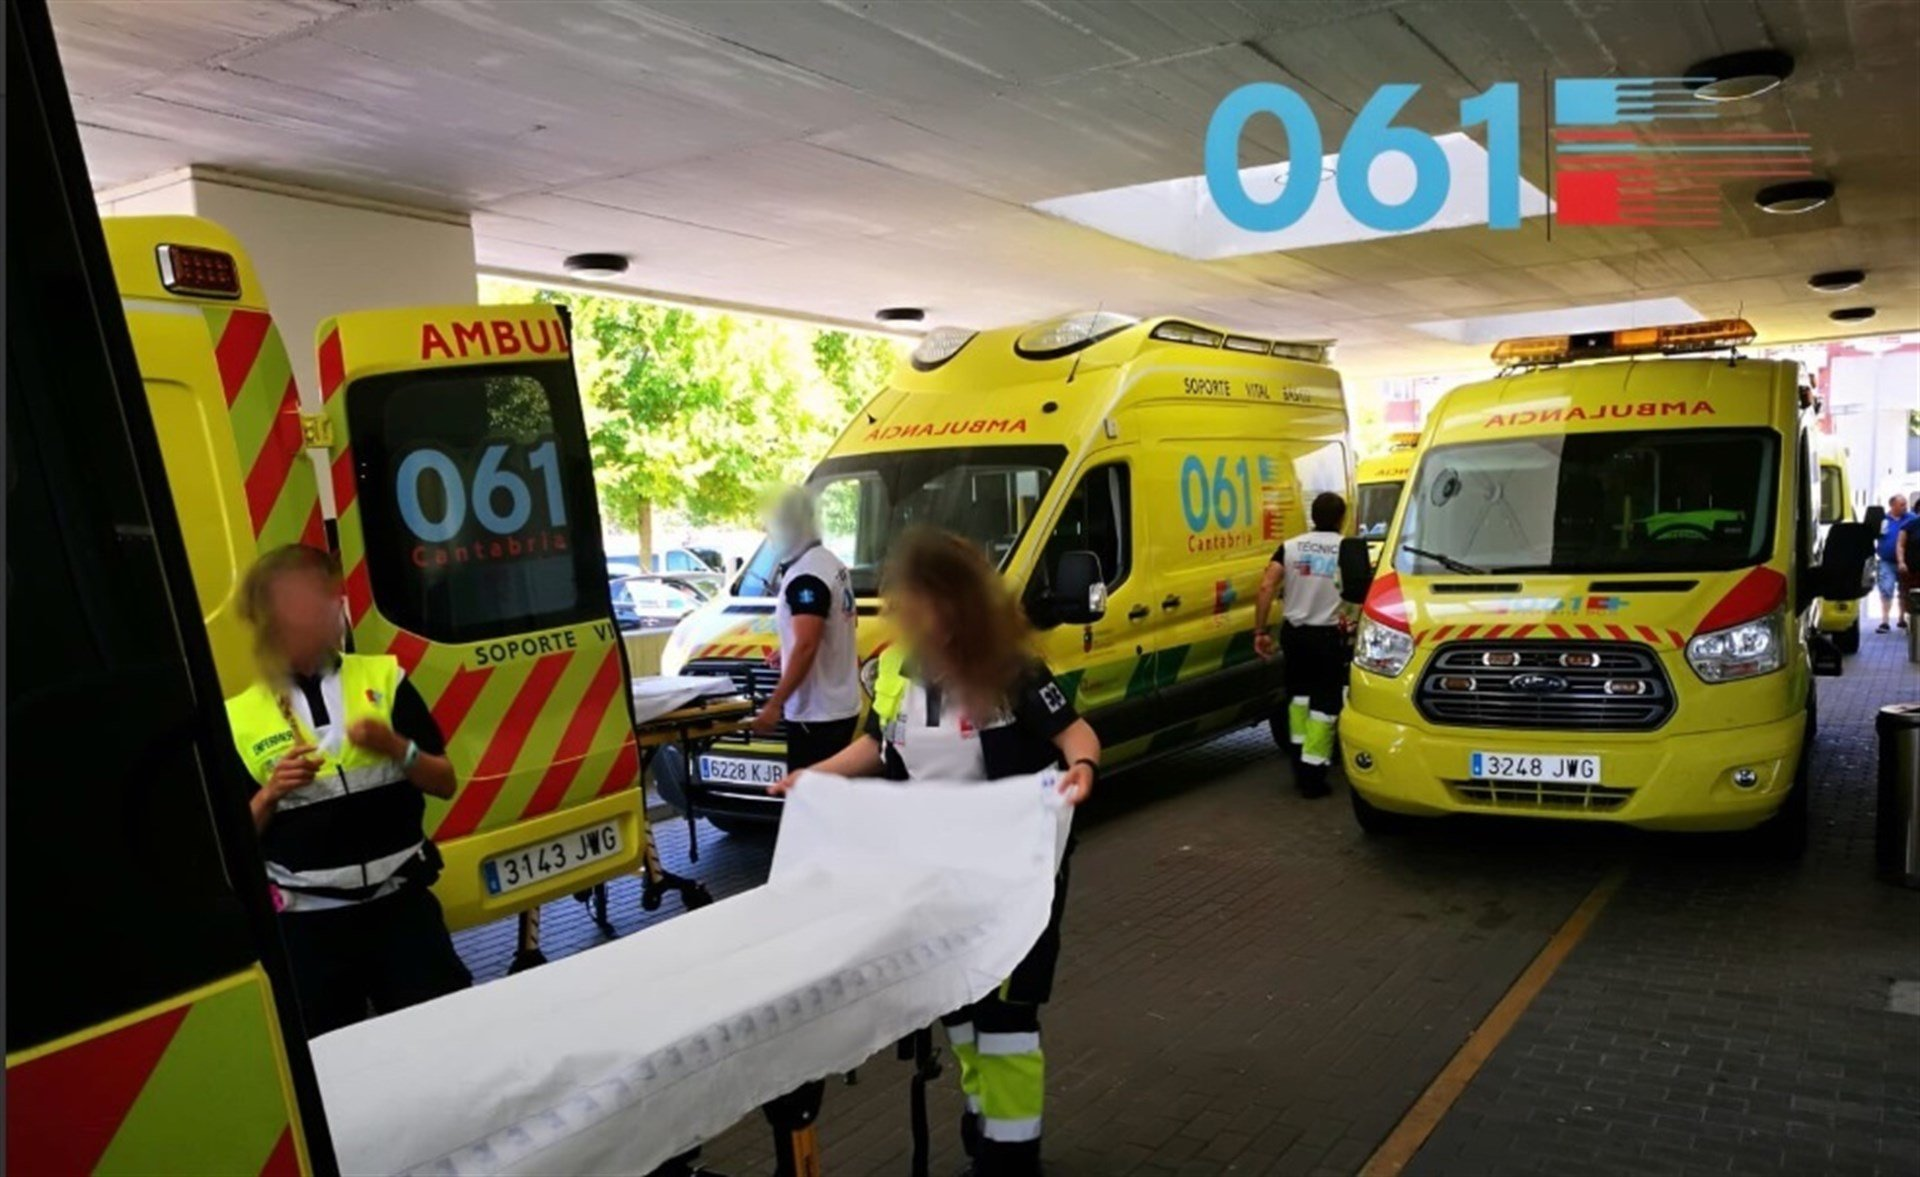 Ambulancias 061 en Valdecilla.